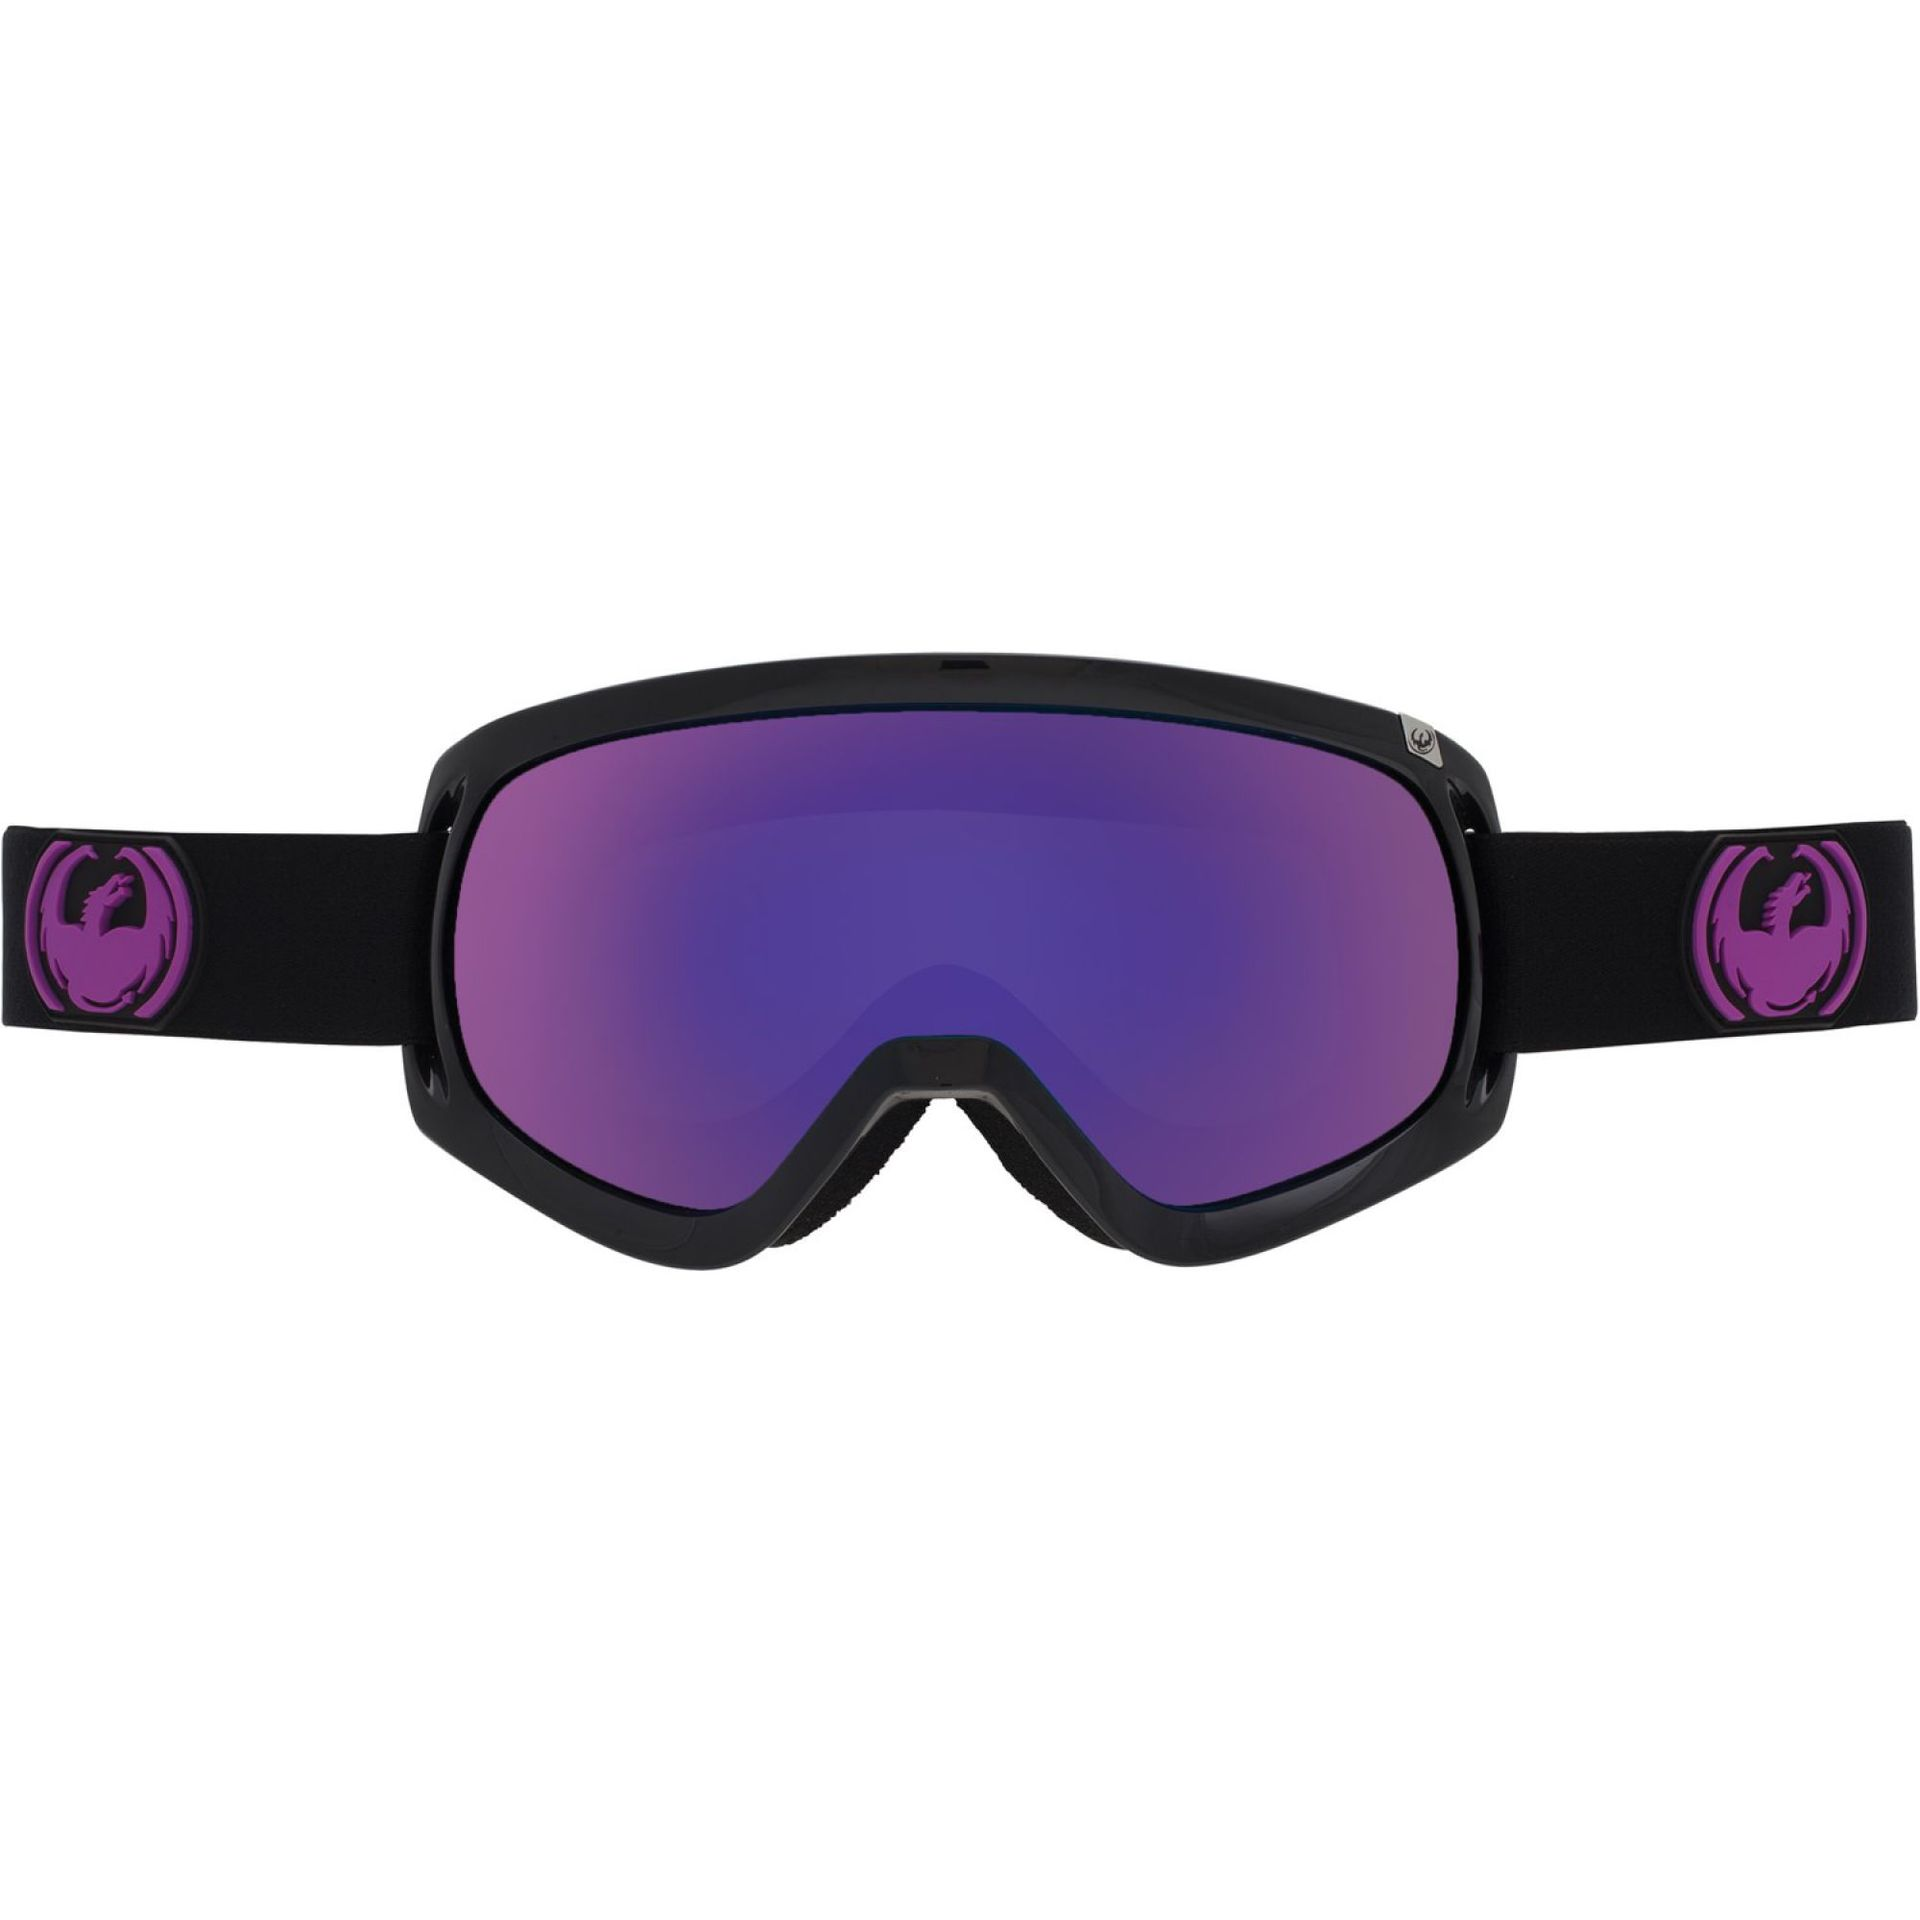 GOGLE DRAGON D3 JET PURPLE ION